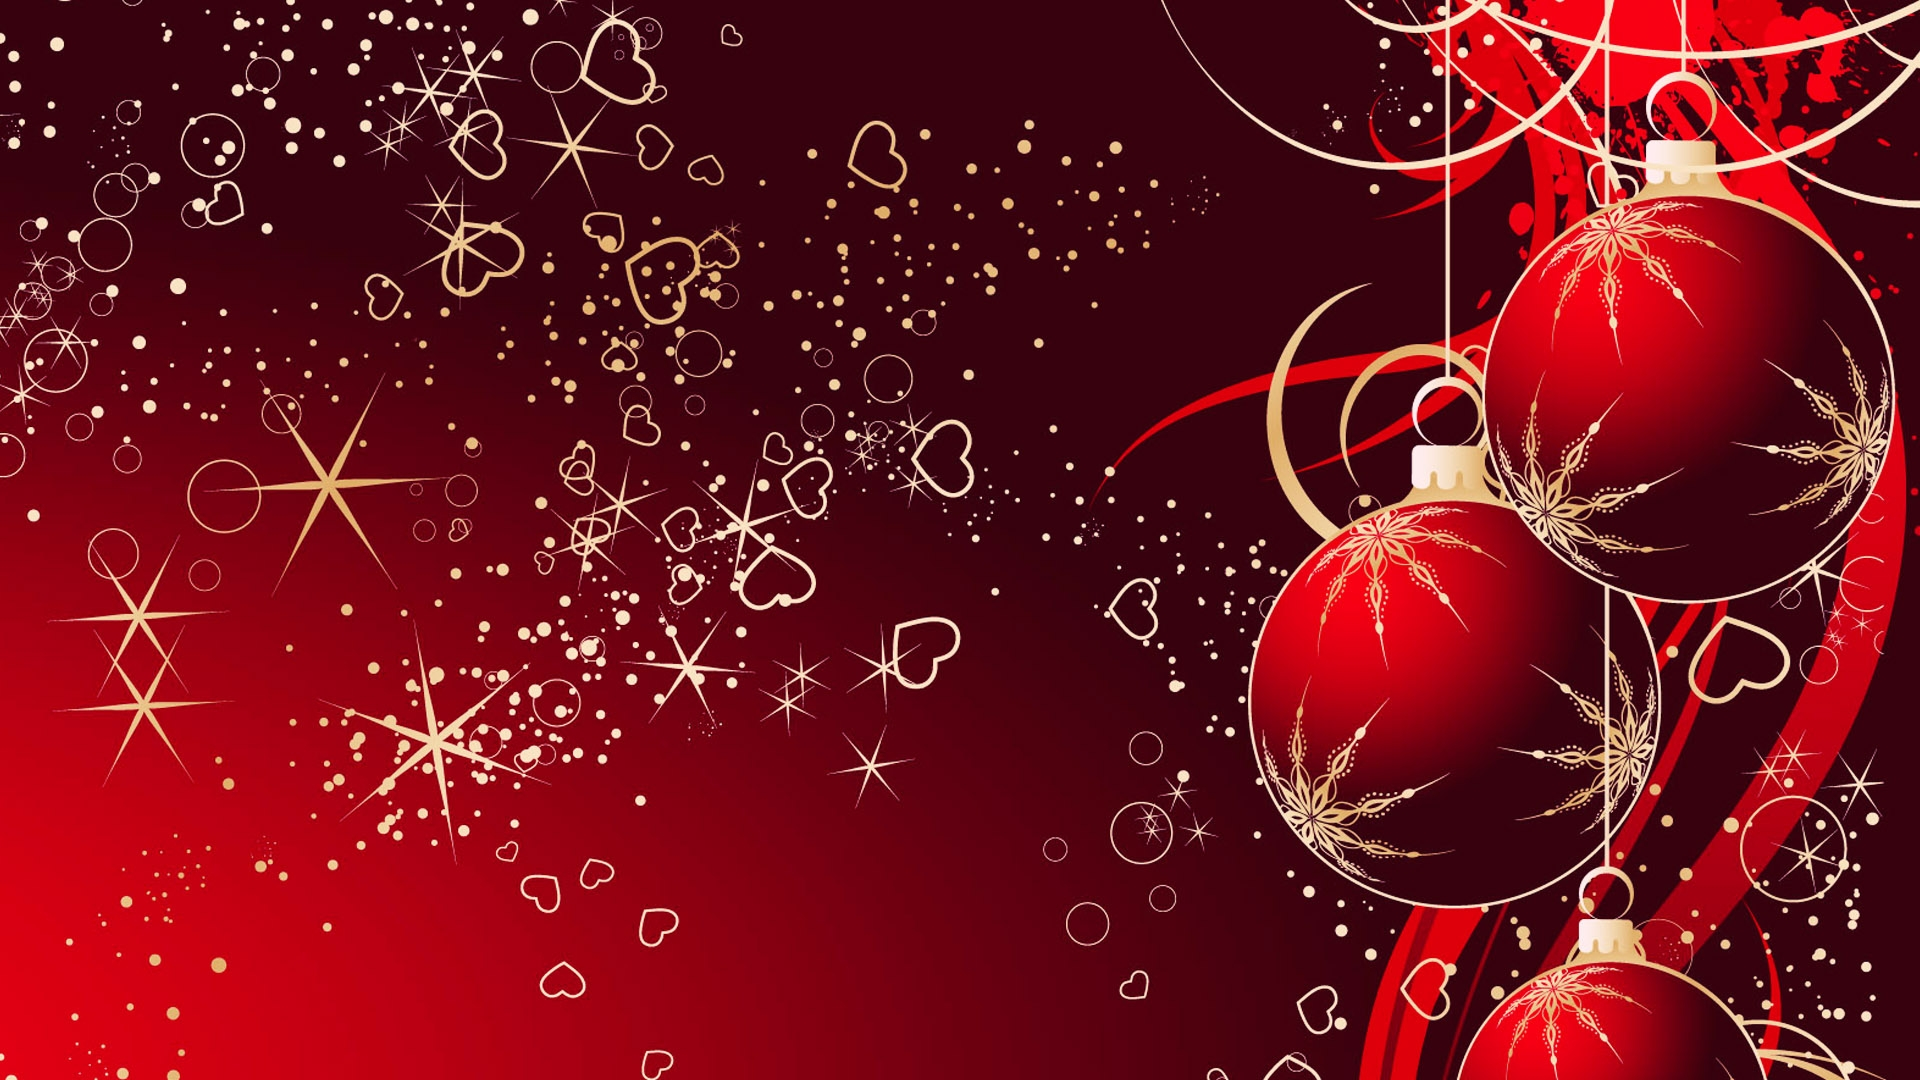 Free Xmas White Backgrounds For Powerpoint Christmas Ppt Templates